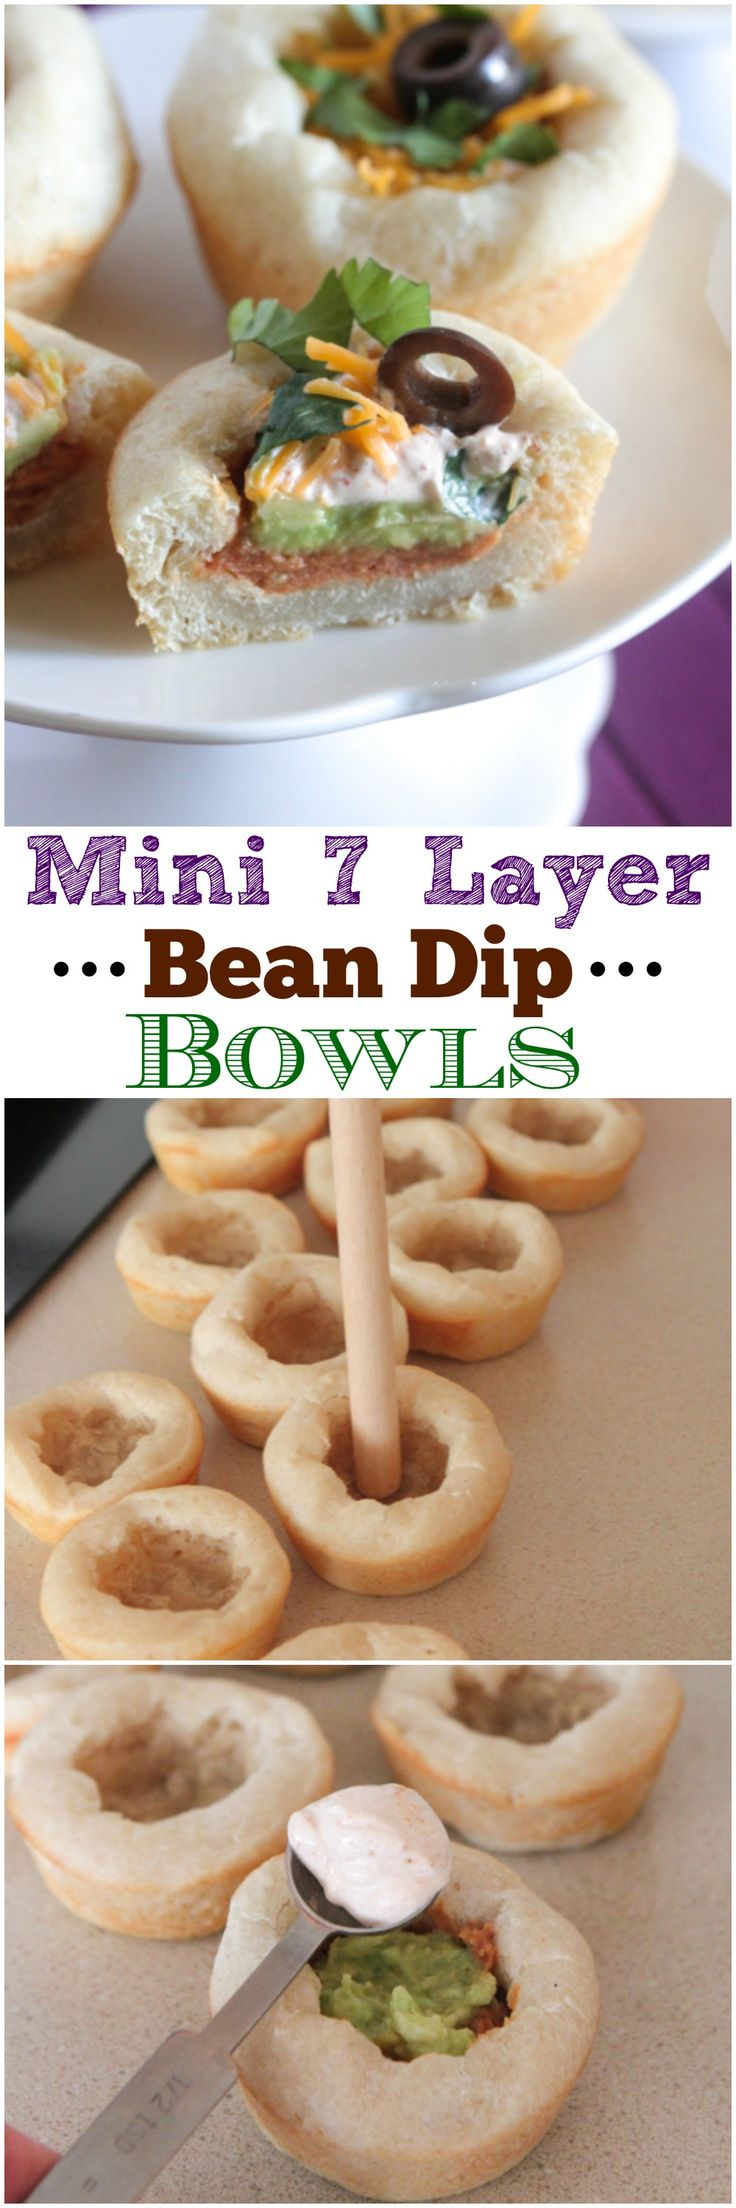 Mini 7 Layer Bean Dip Bowls-the perfect appetizer for any party! #recipe #appetizer #partyfood